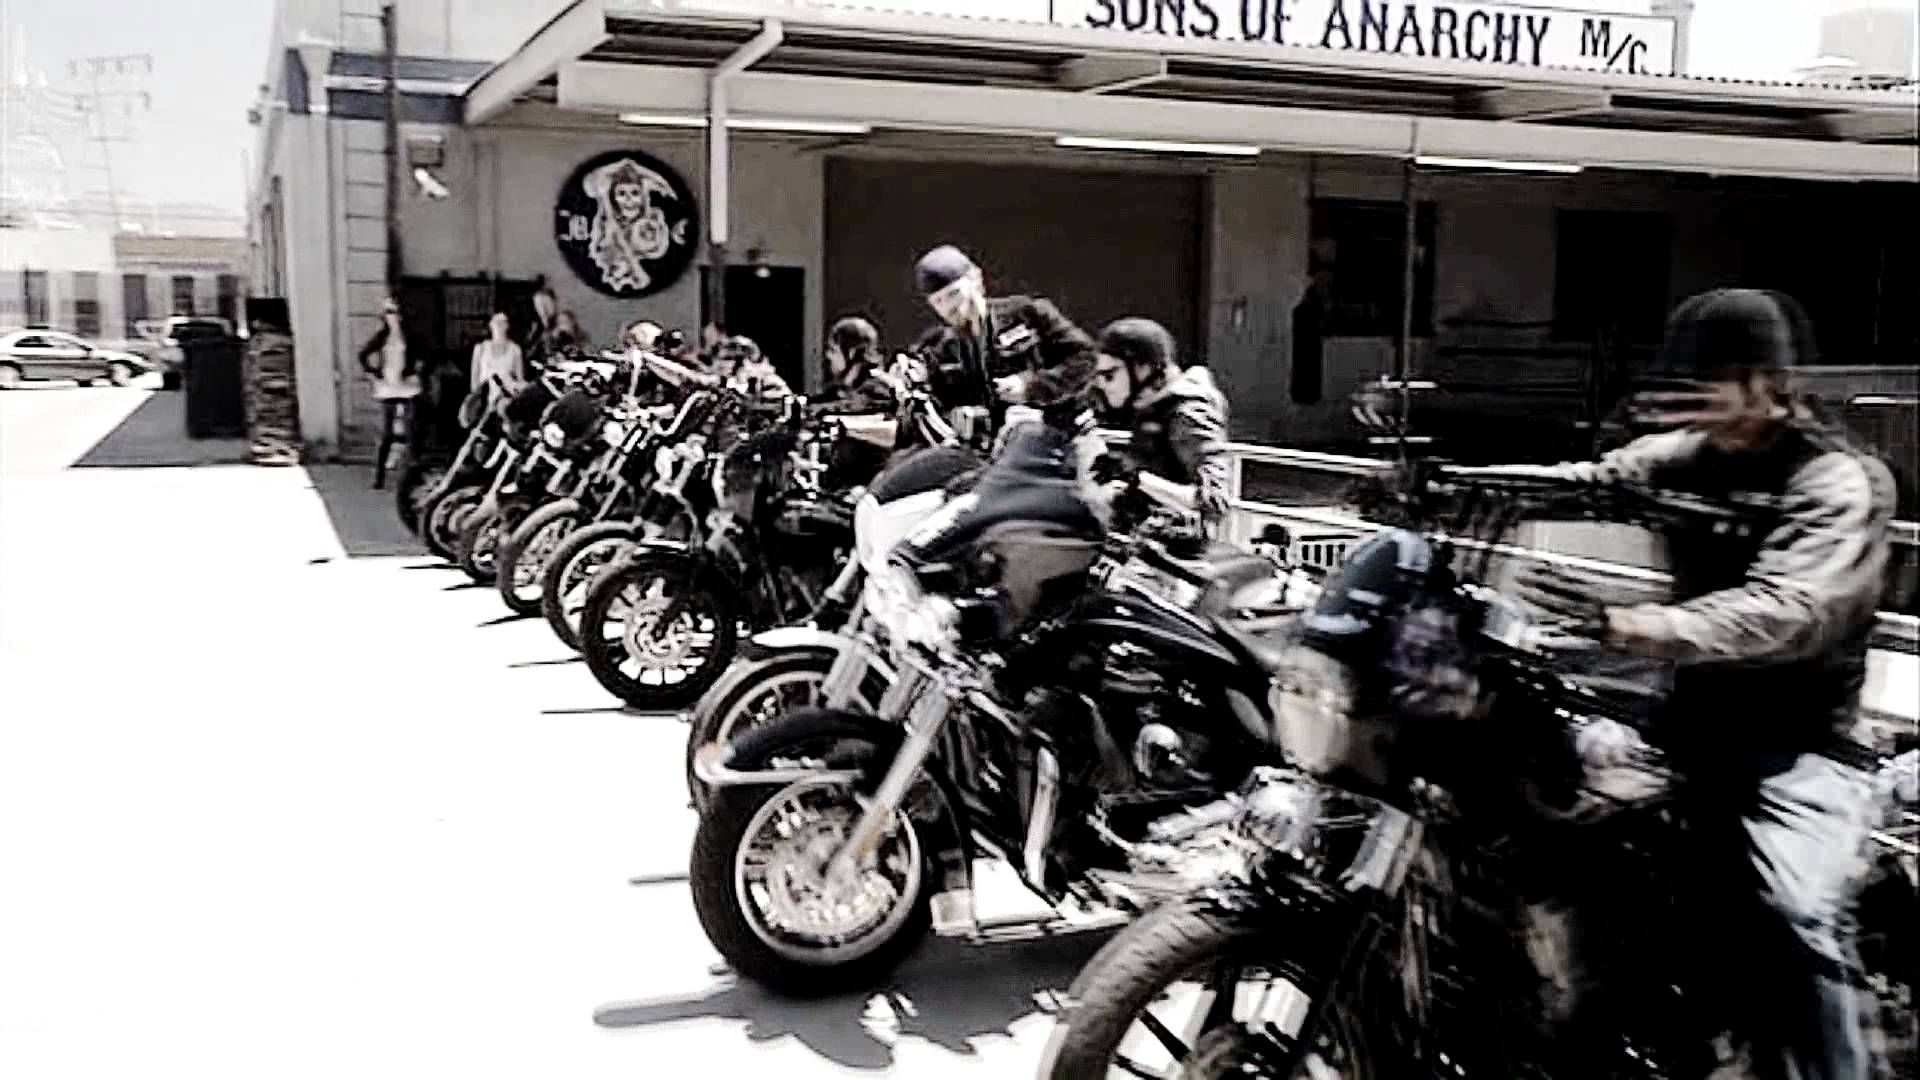 You Re Losing Your Memory Now With Son S Of Anarchy Scenes